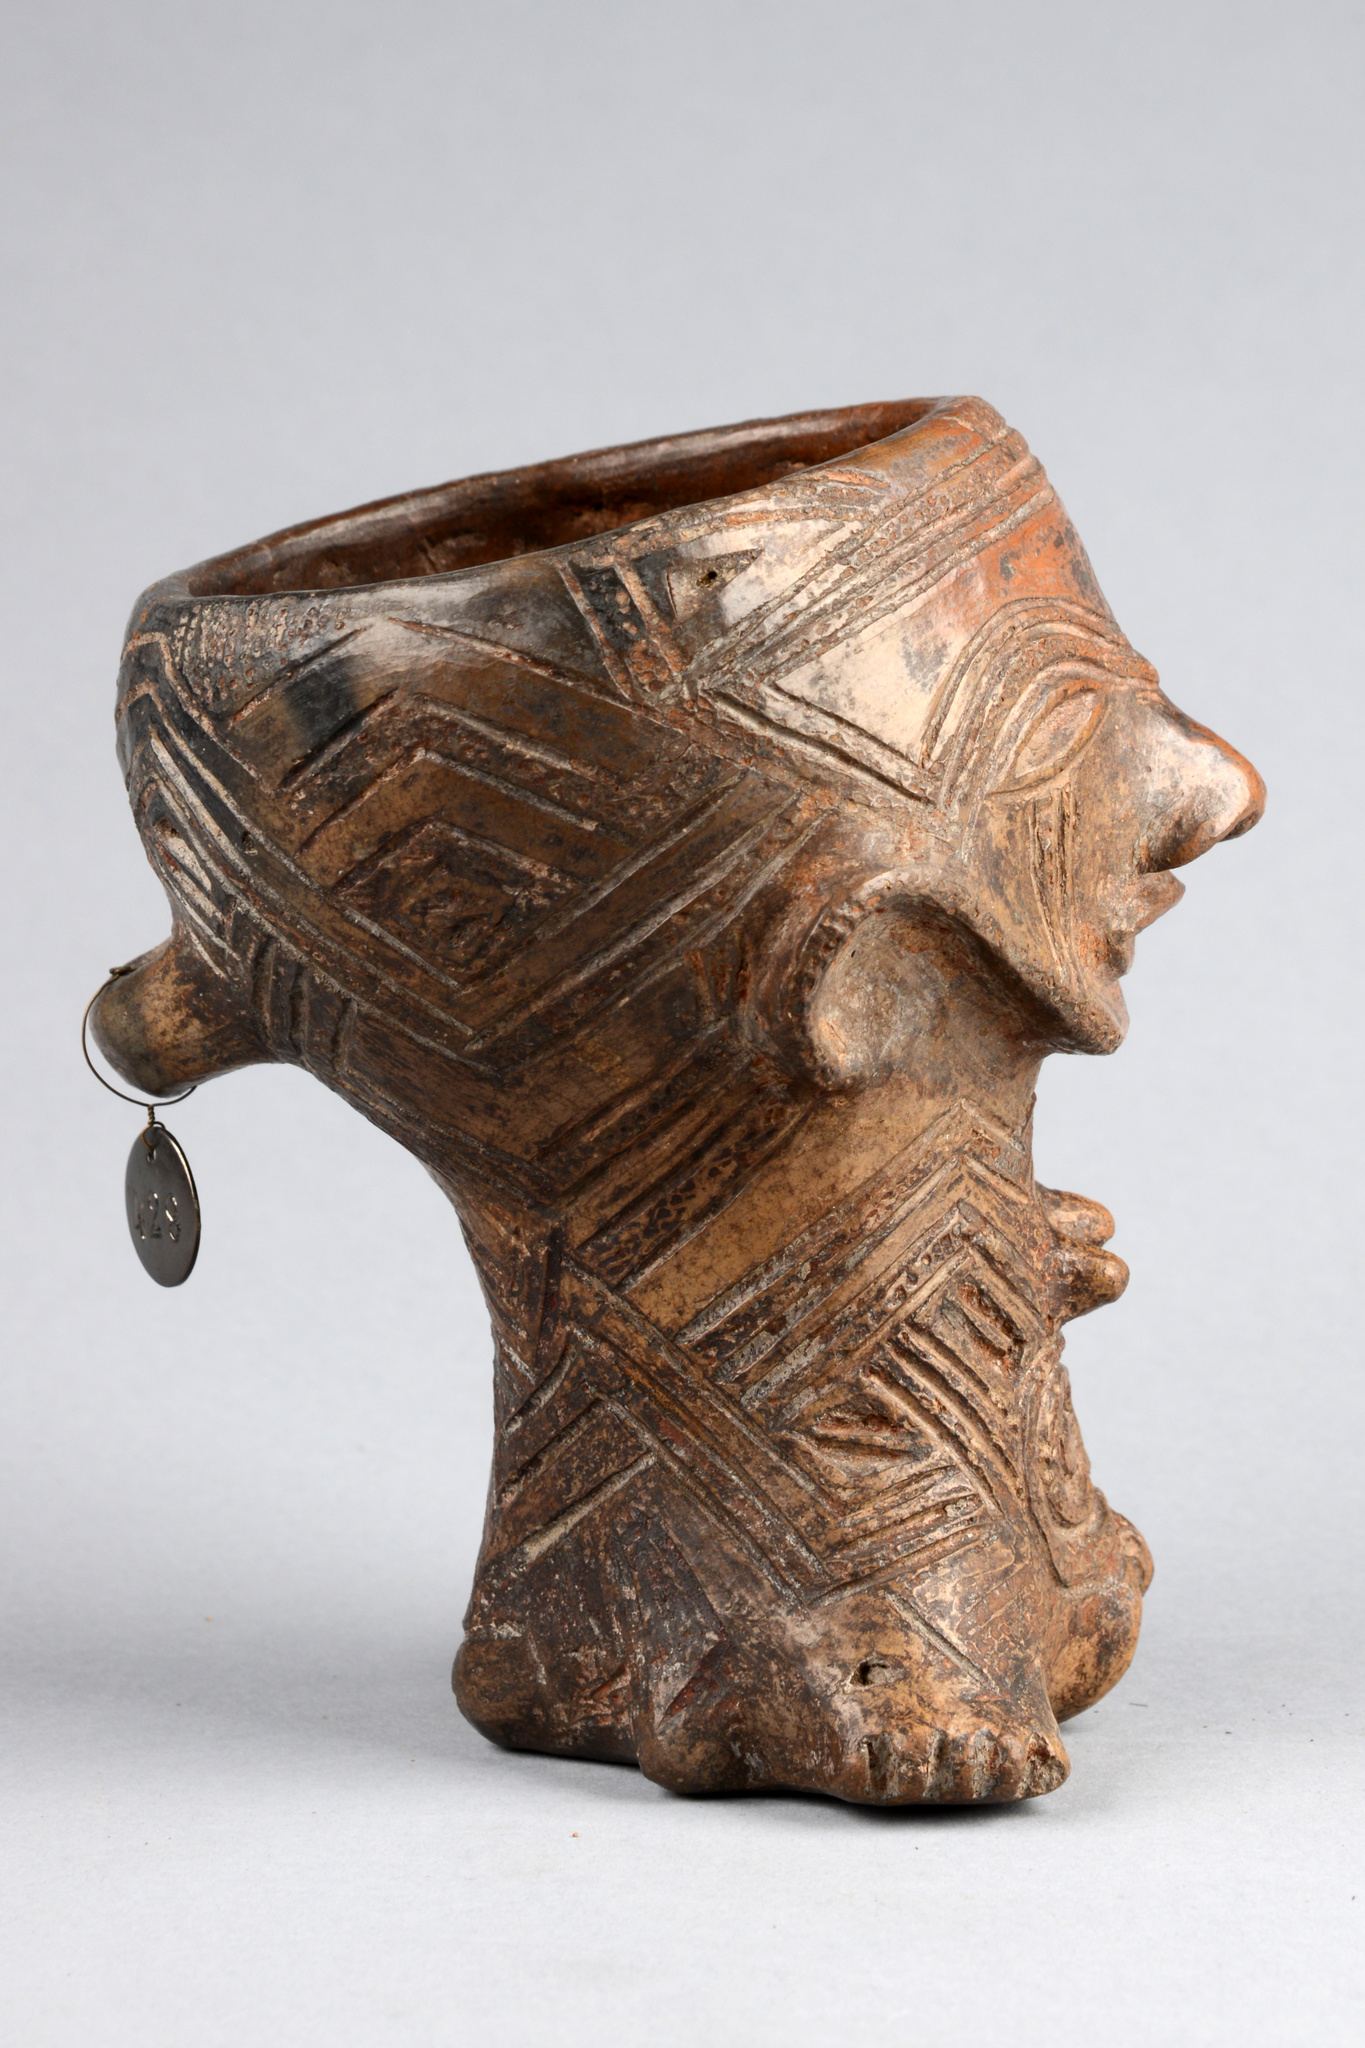 Anthropomorphic cup